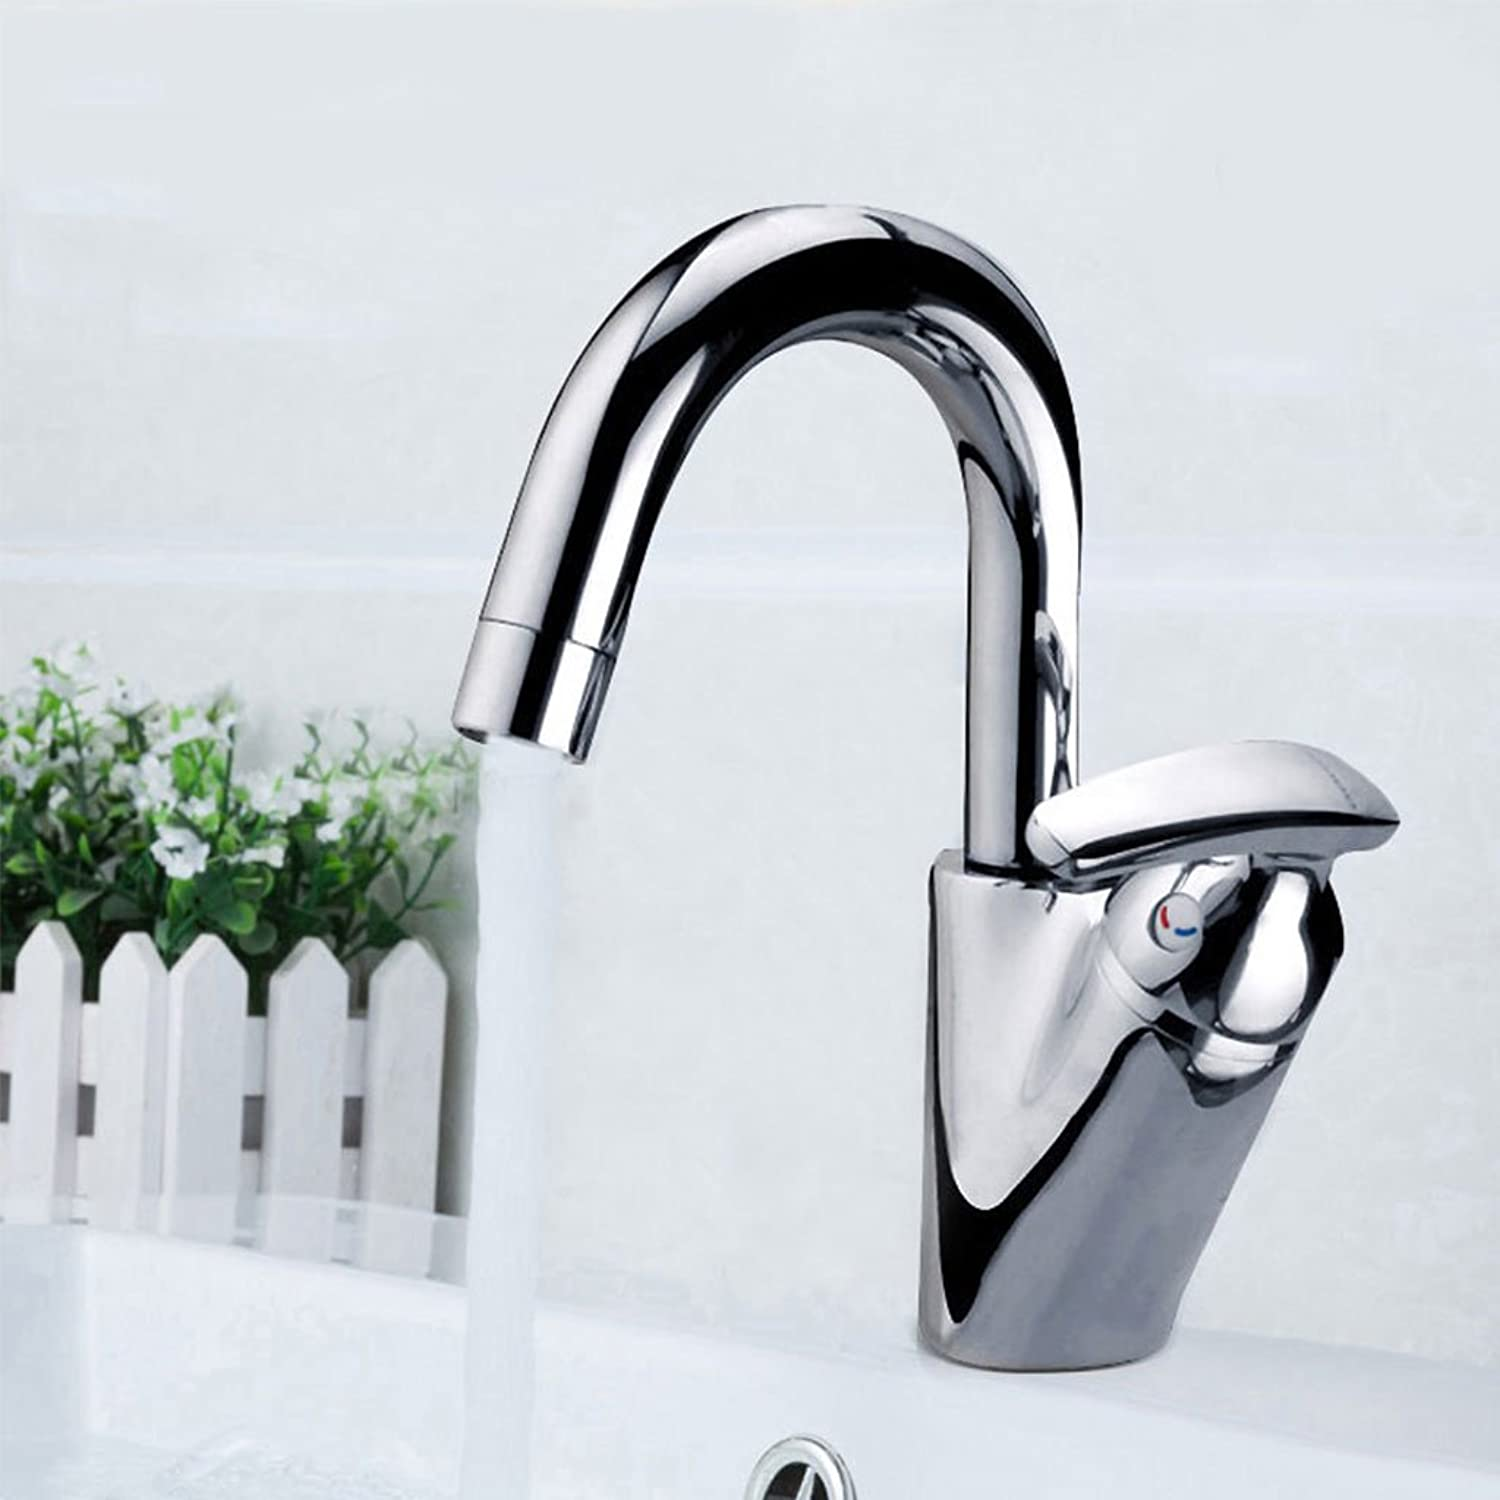 Creative Fashion Thickening High-end Fine Copper Faucet Bathroom Kitchen Basin Mixer